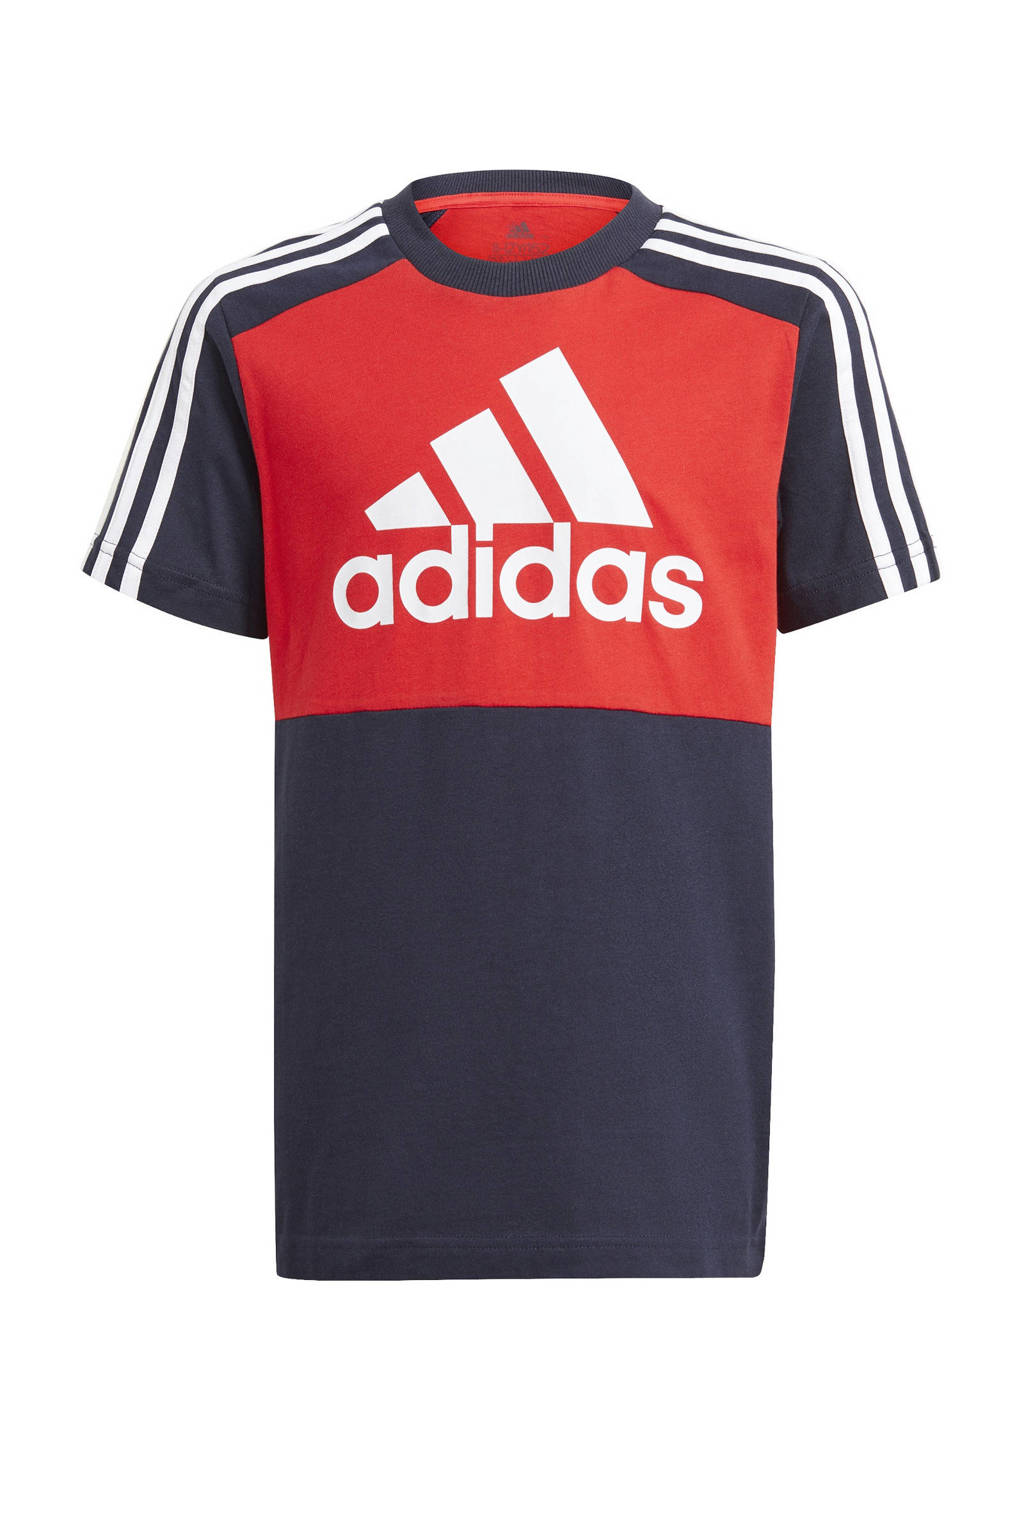 adidas Performance   sport T-shirt rood/donkerblauw/wit, Rood/donkerblauw/wit